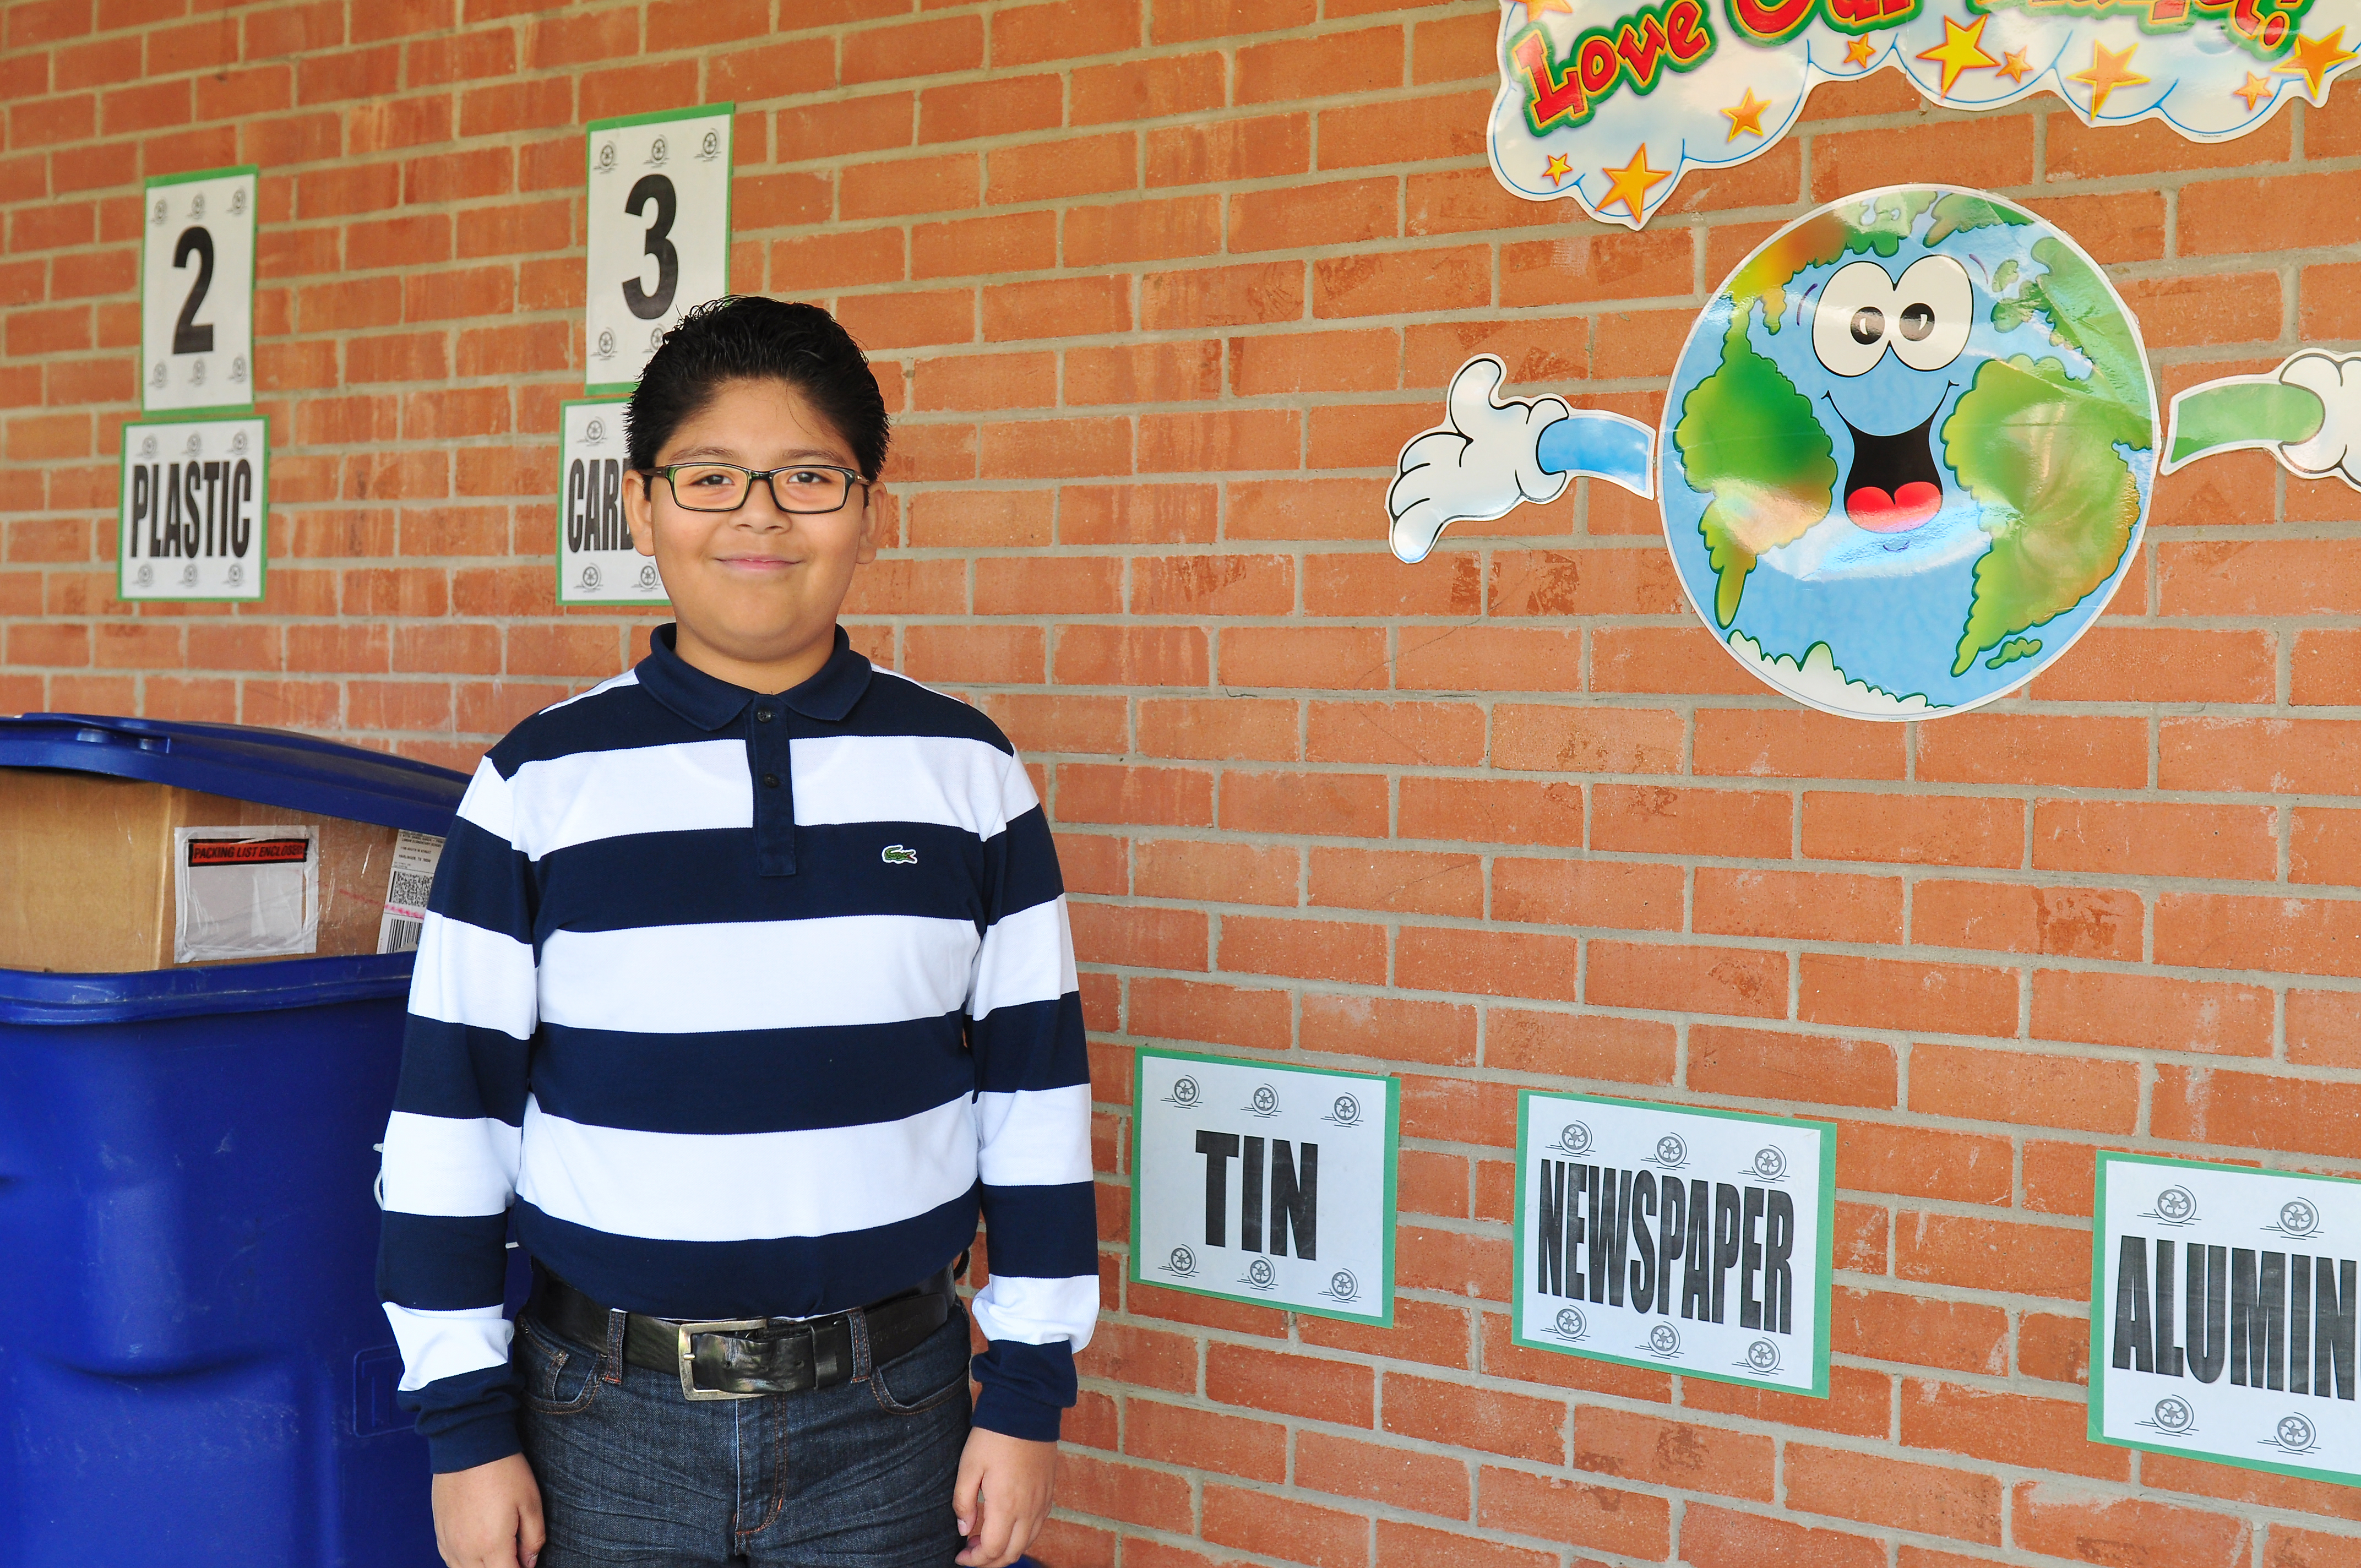 Student of the Week: Fifth grade student keeps campus green